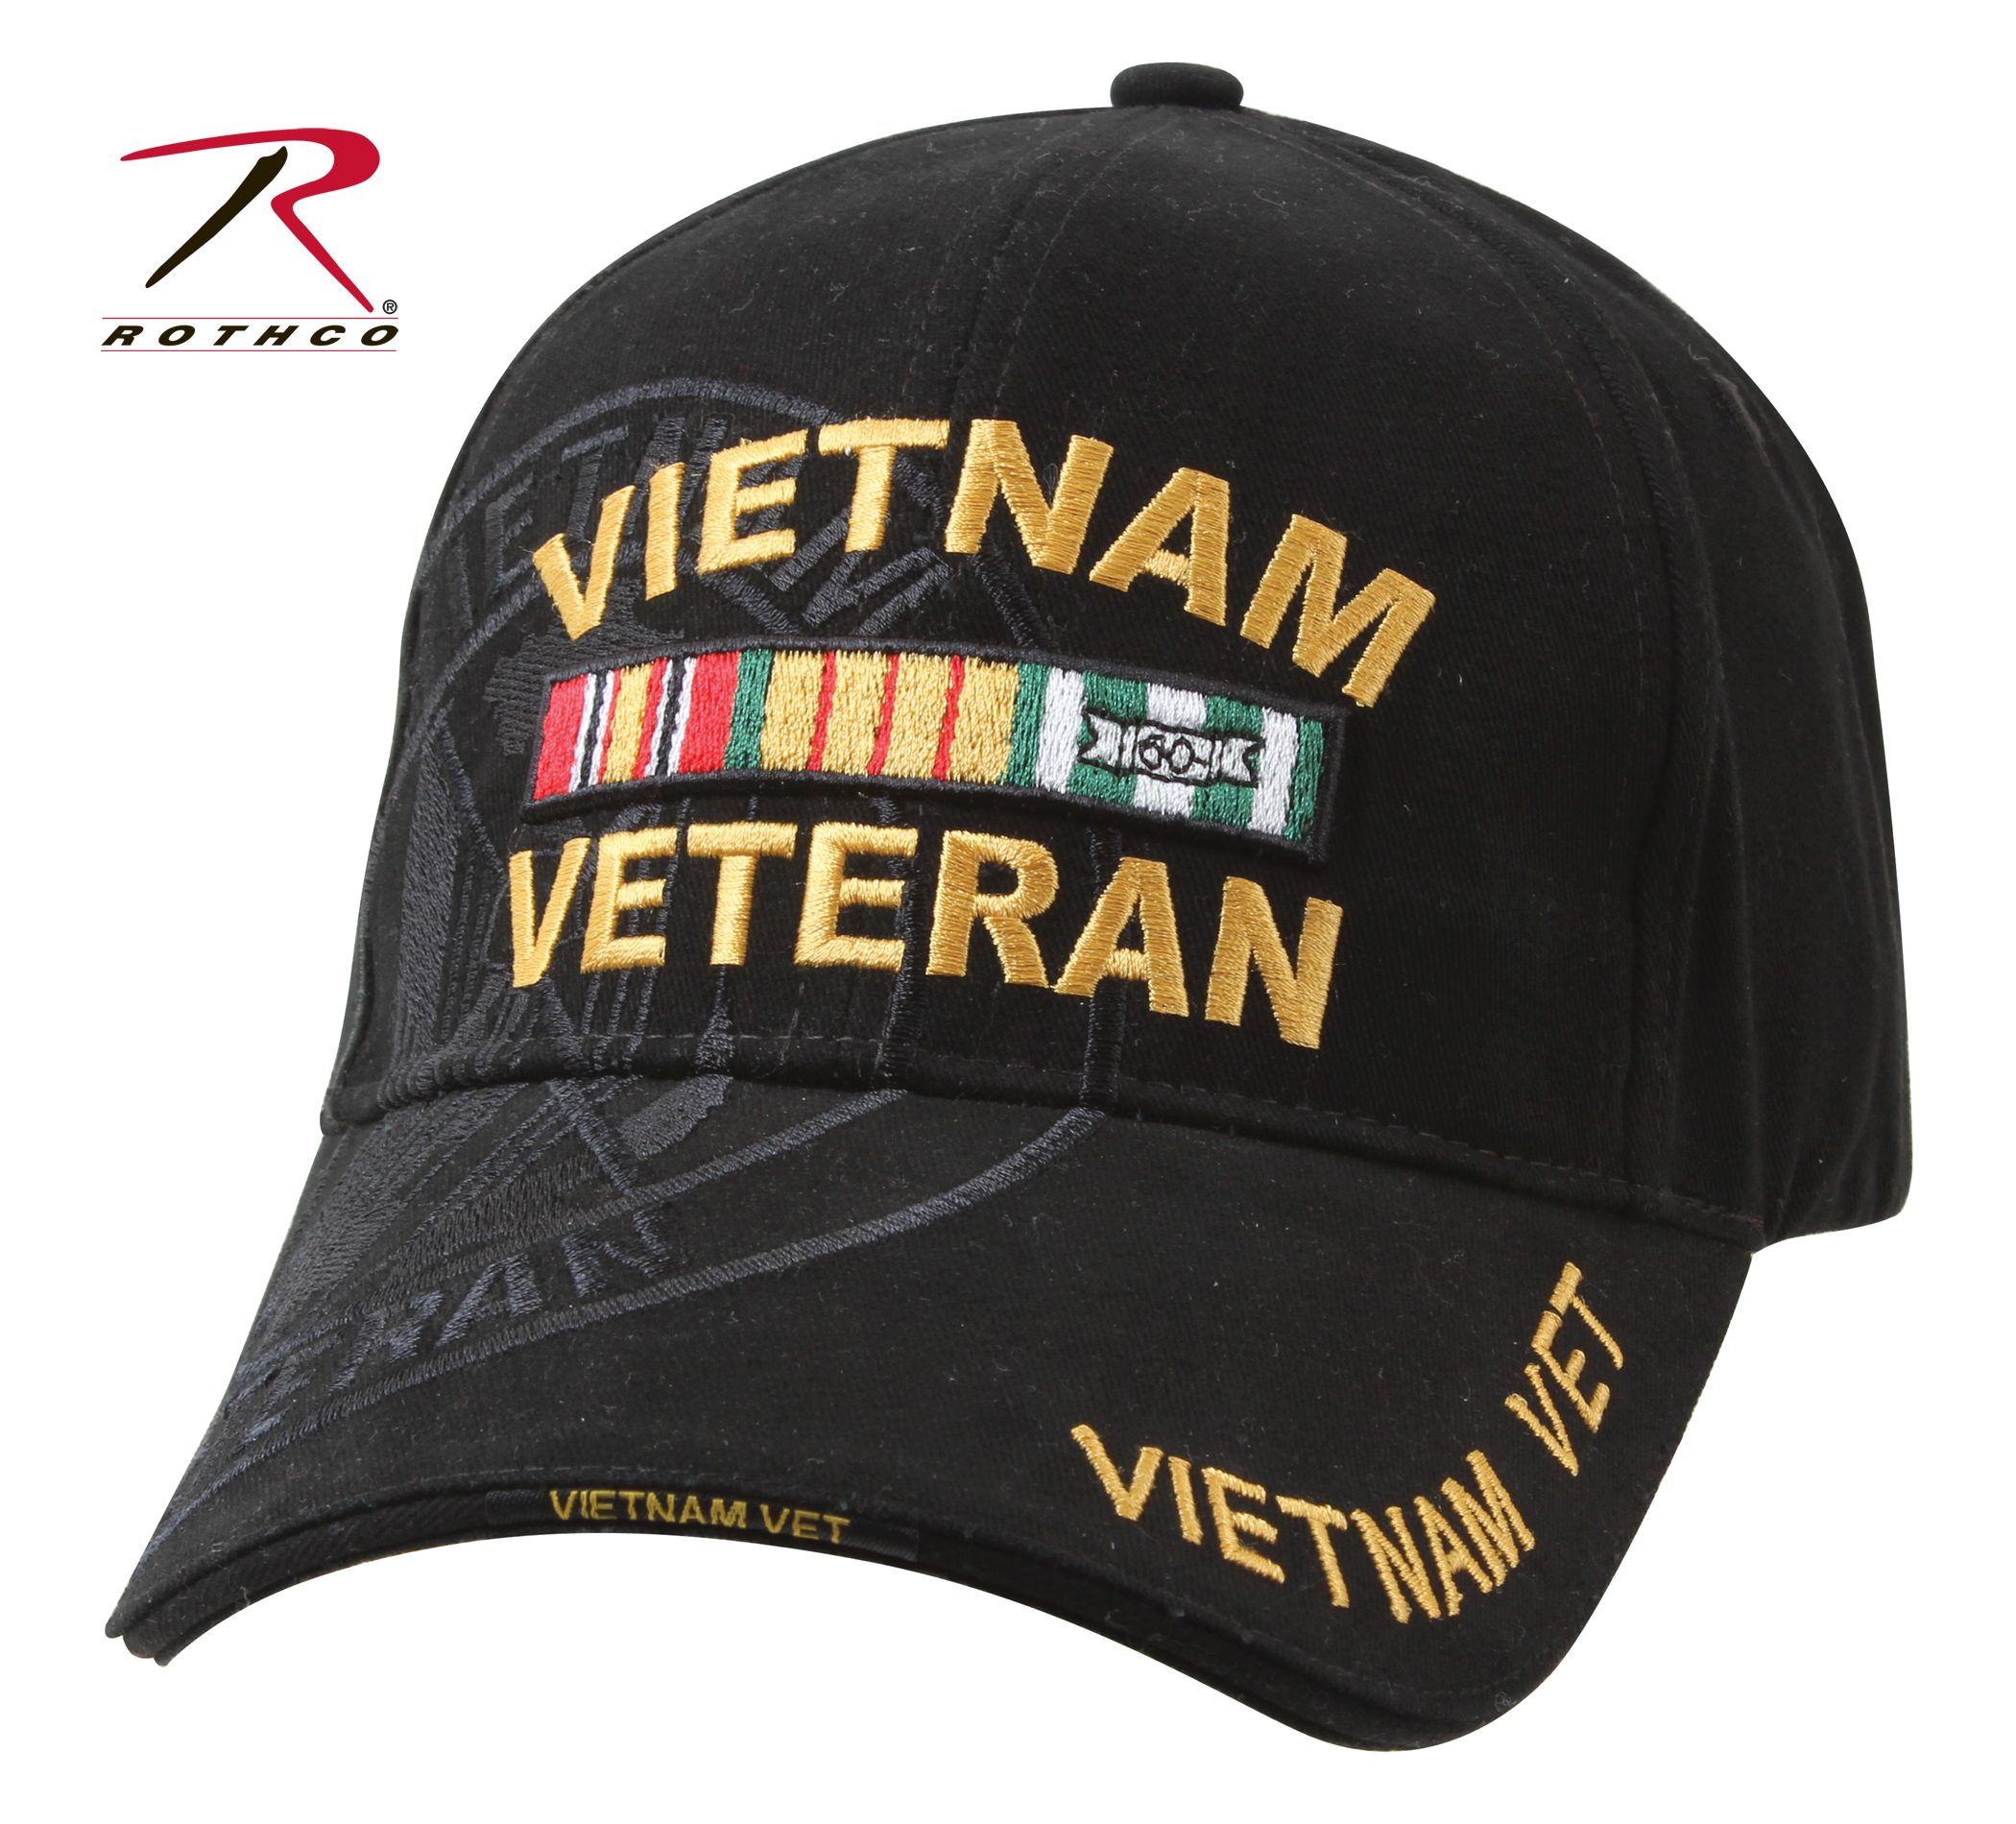 93dffc9e9c4 Rothco Deluxe Vietnam Veteran Military Low Profile Shadow Caps